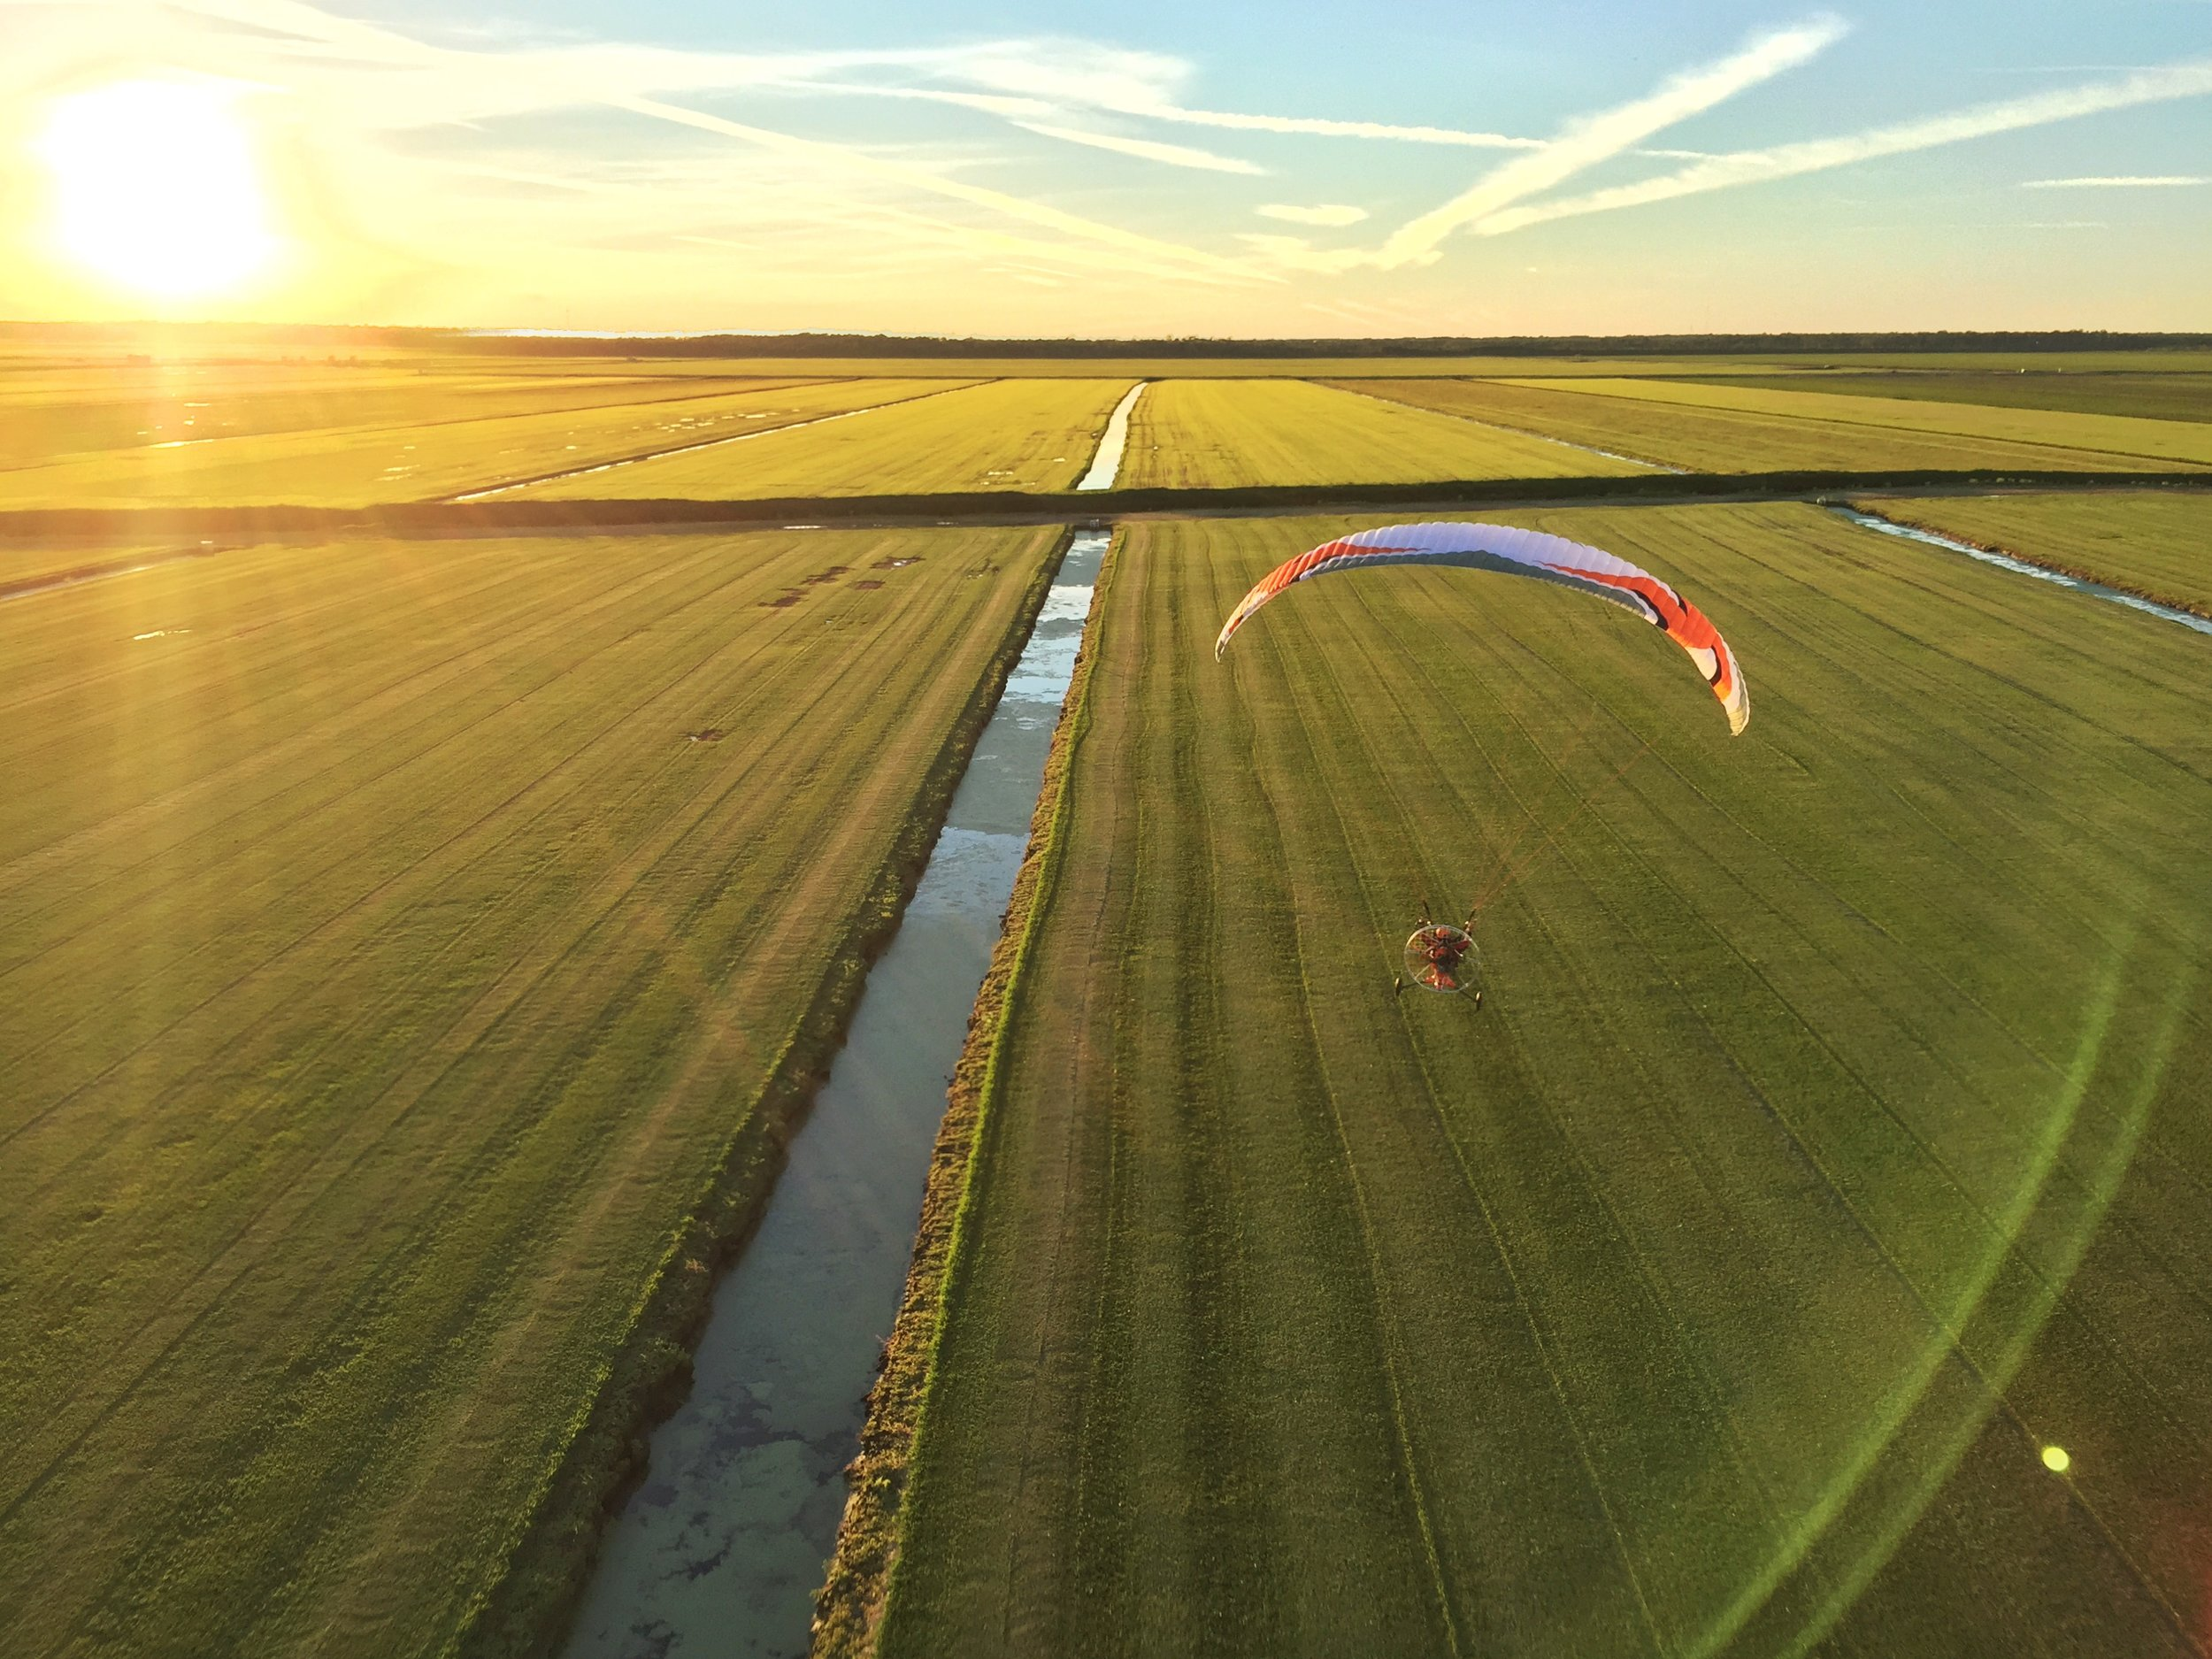 Training - Before you can take to the skies you'll need some training and Aviator Paramotor offers the most thorough, safe, and fun training in the world.